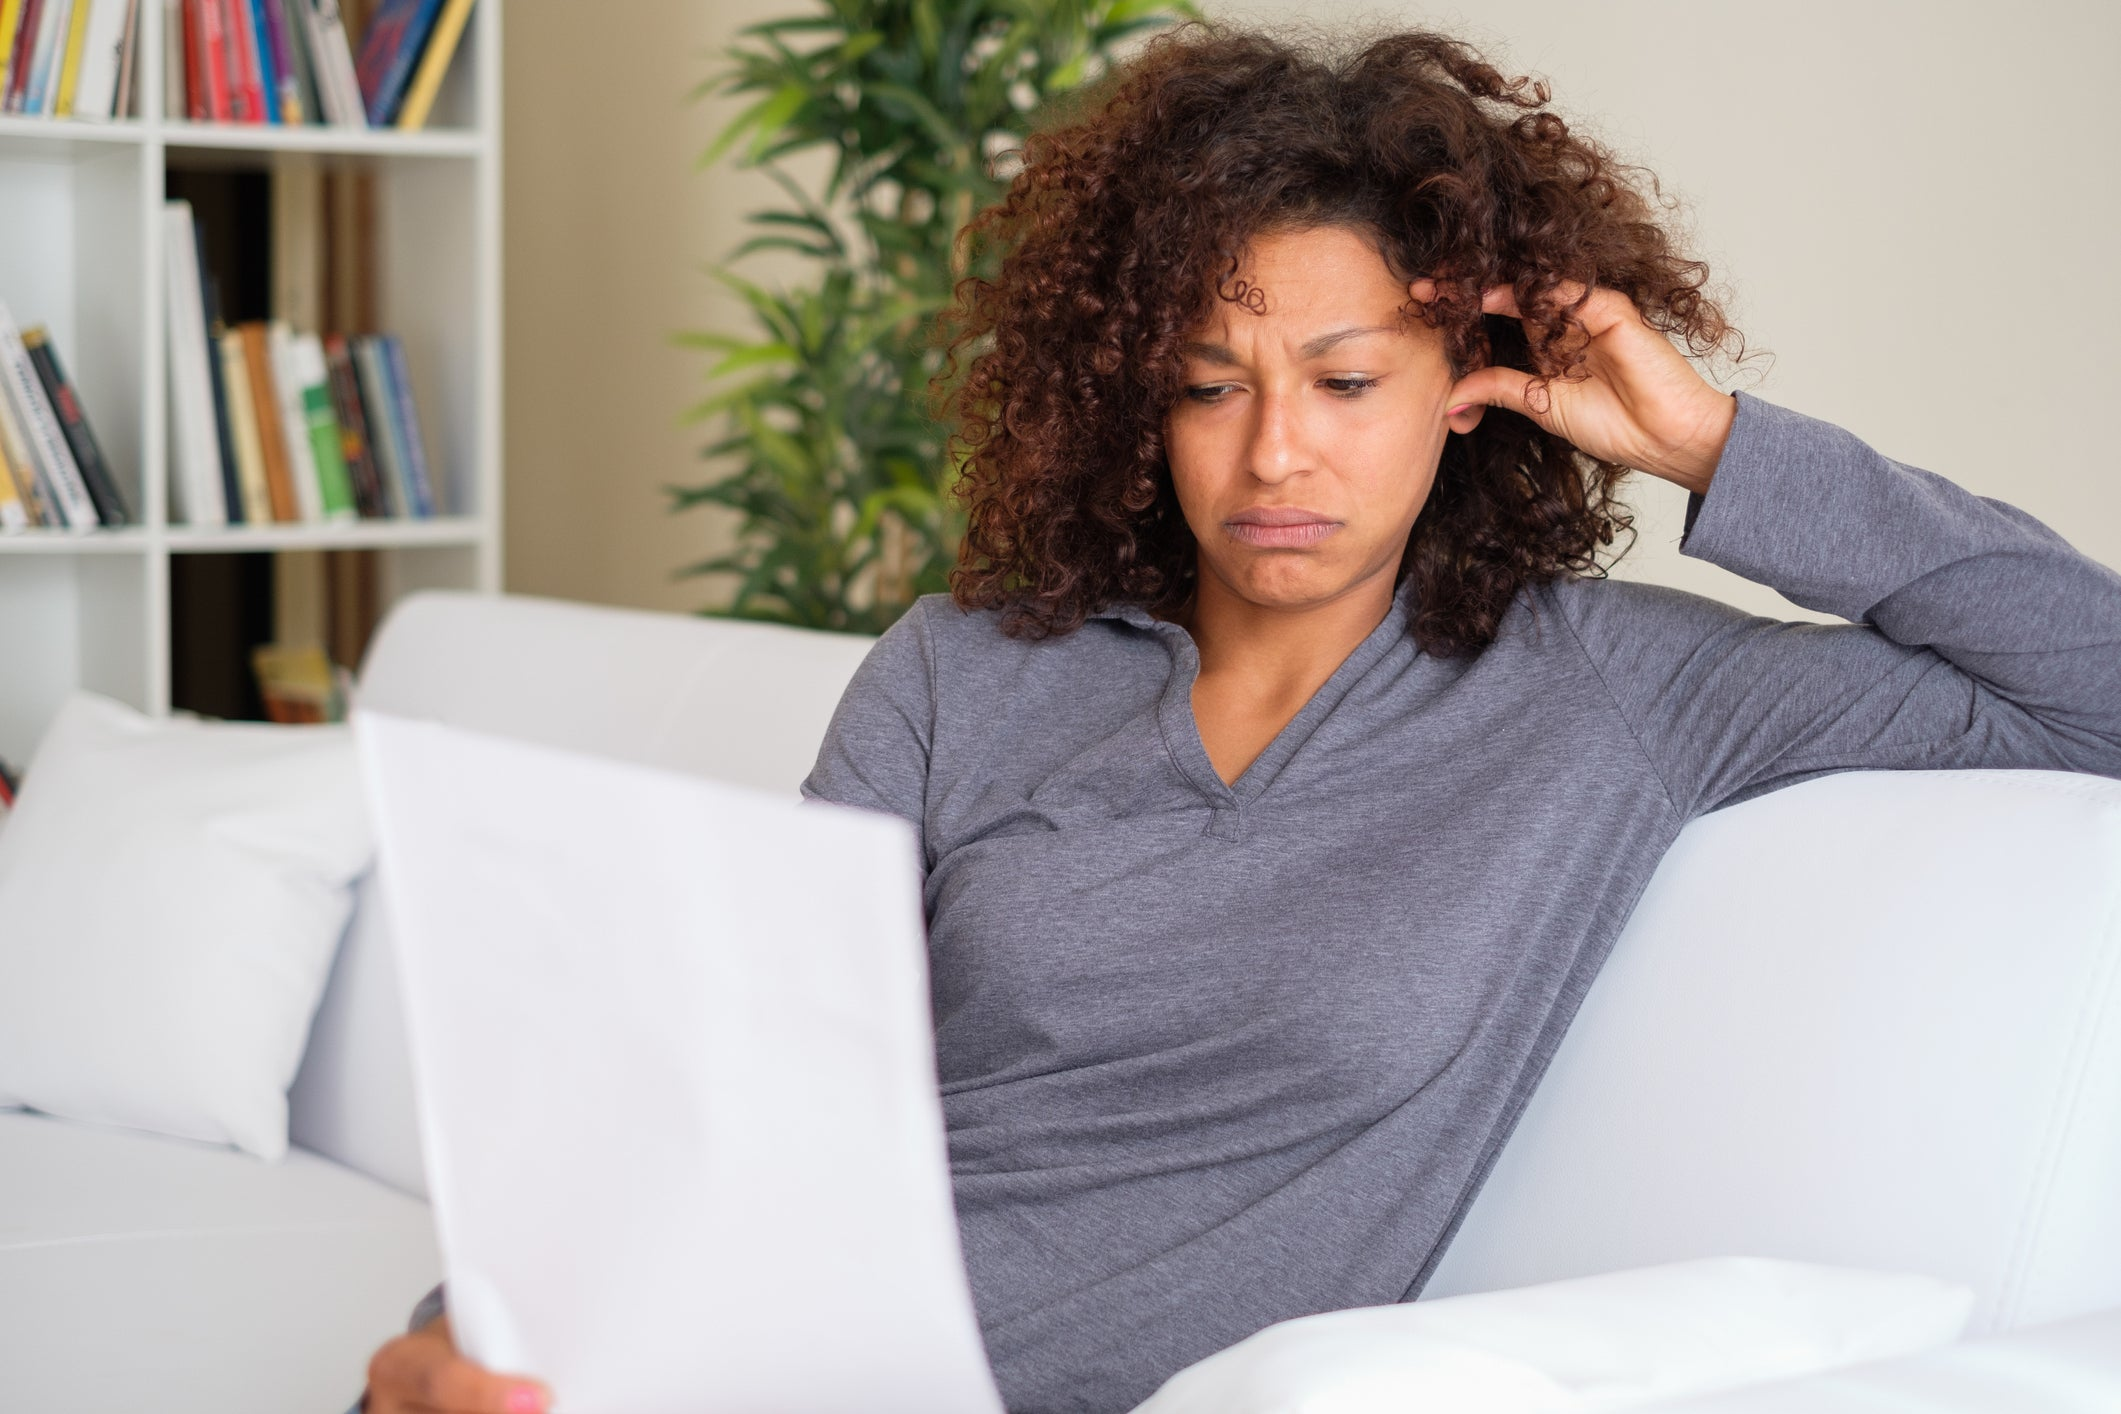 A stressed woman reading paperwork while sitting on her couch.